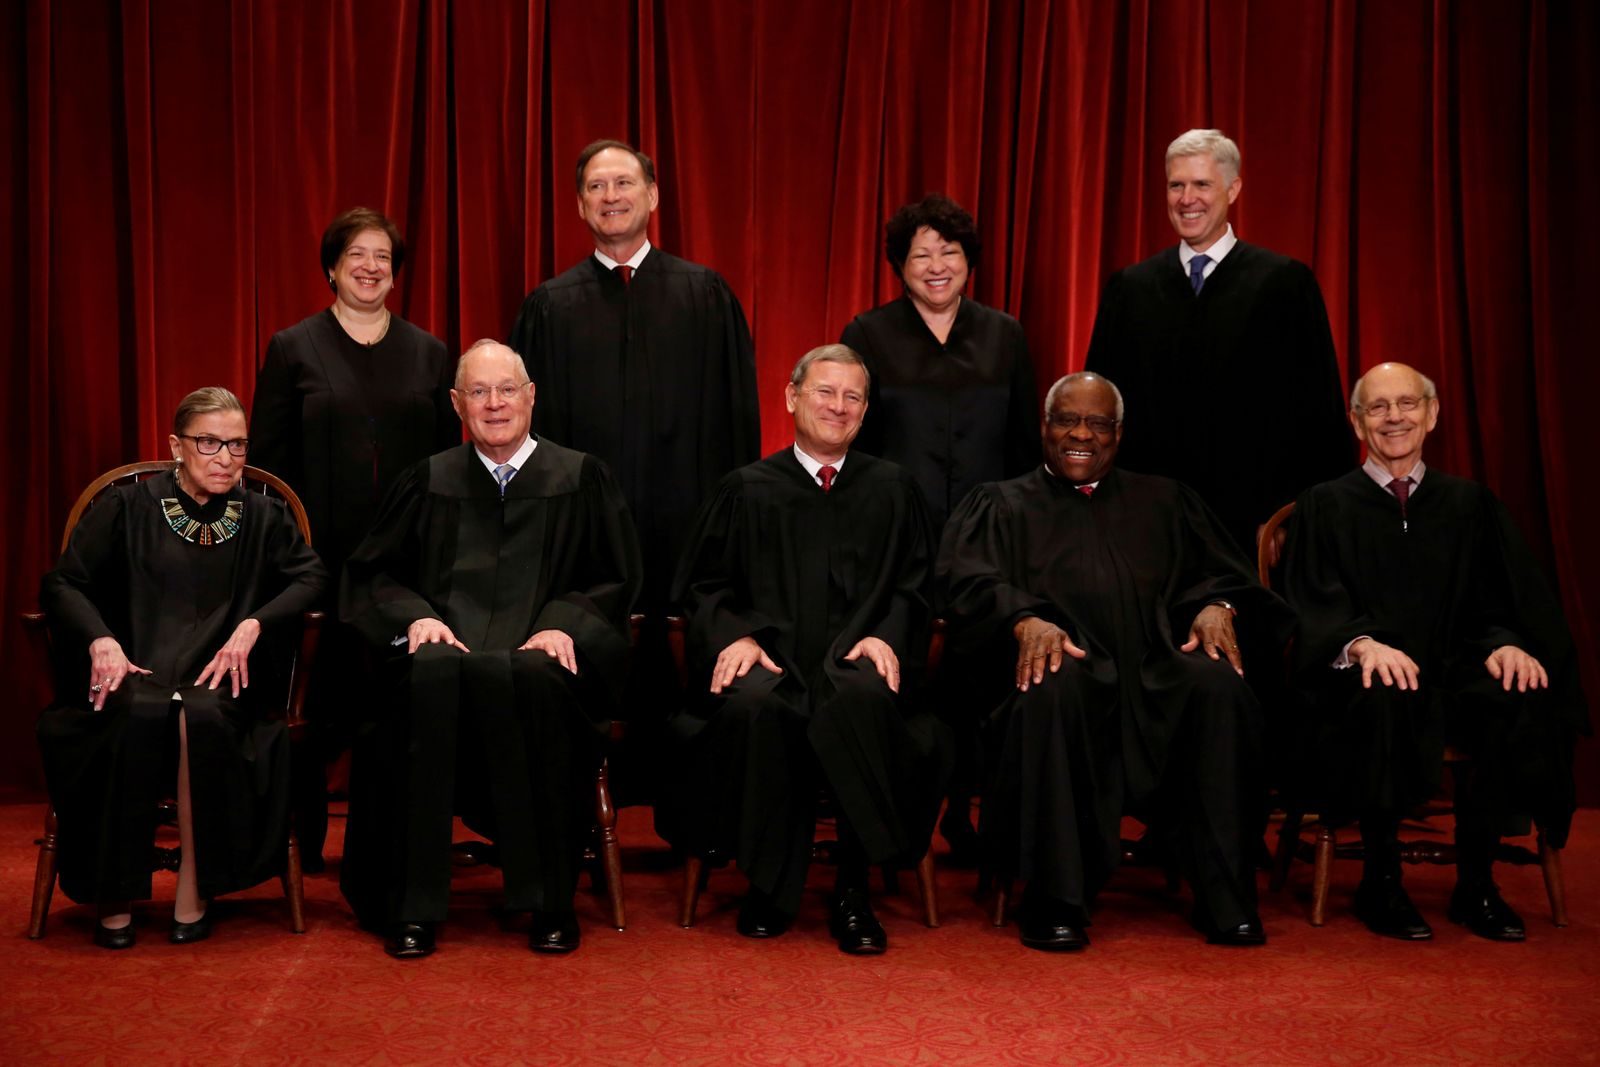 FILE PHOTO: Roberts leads the U.S. Supreme Court in taking a new family photo including Gorsuch, their most recent addition, at the Supreme Court building in Washington